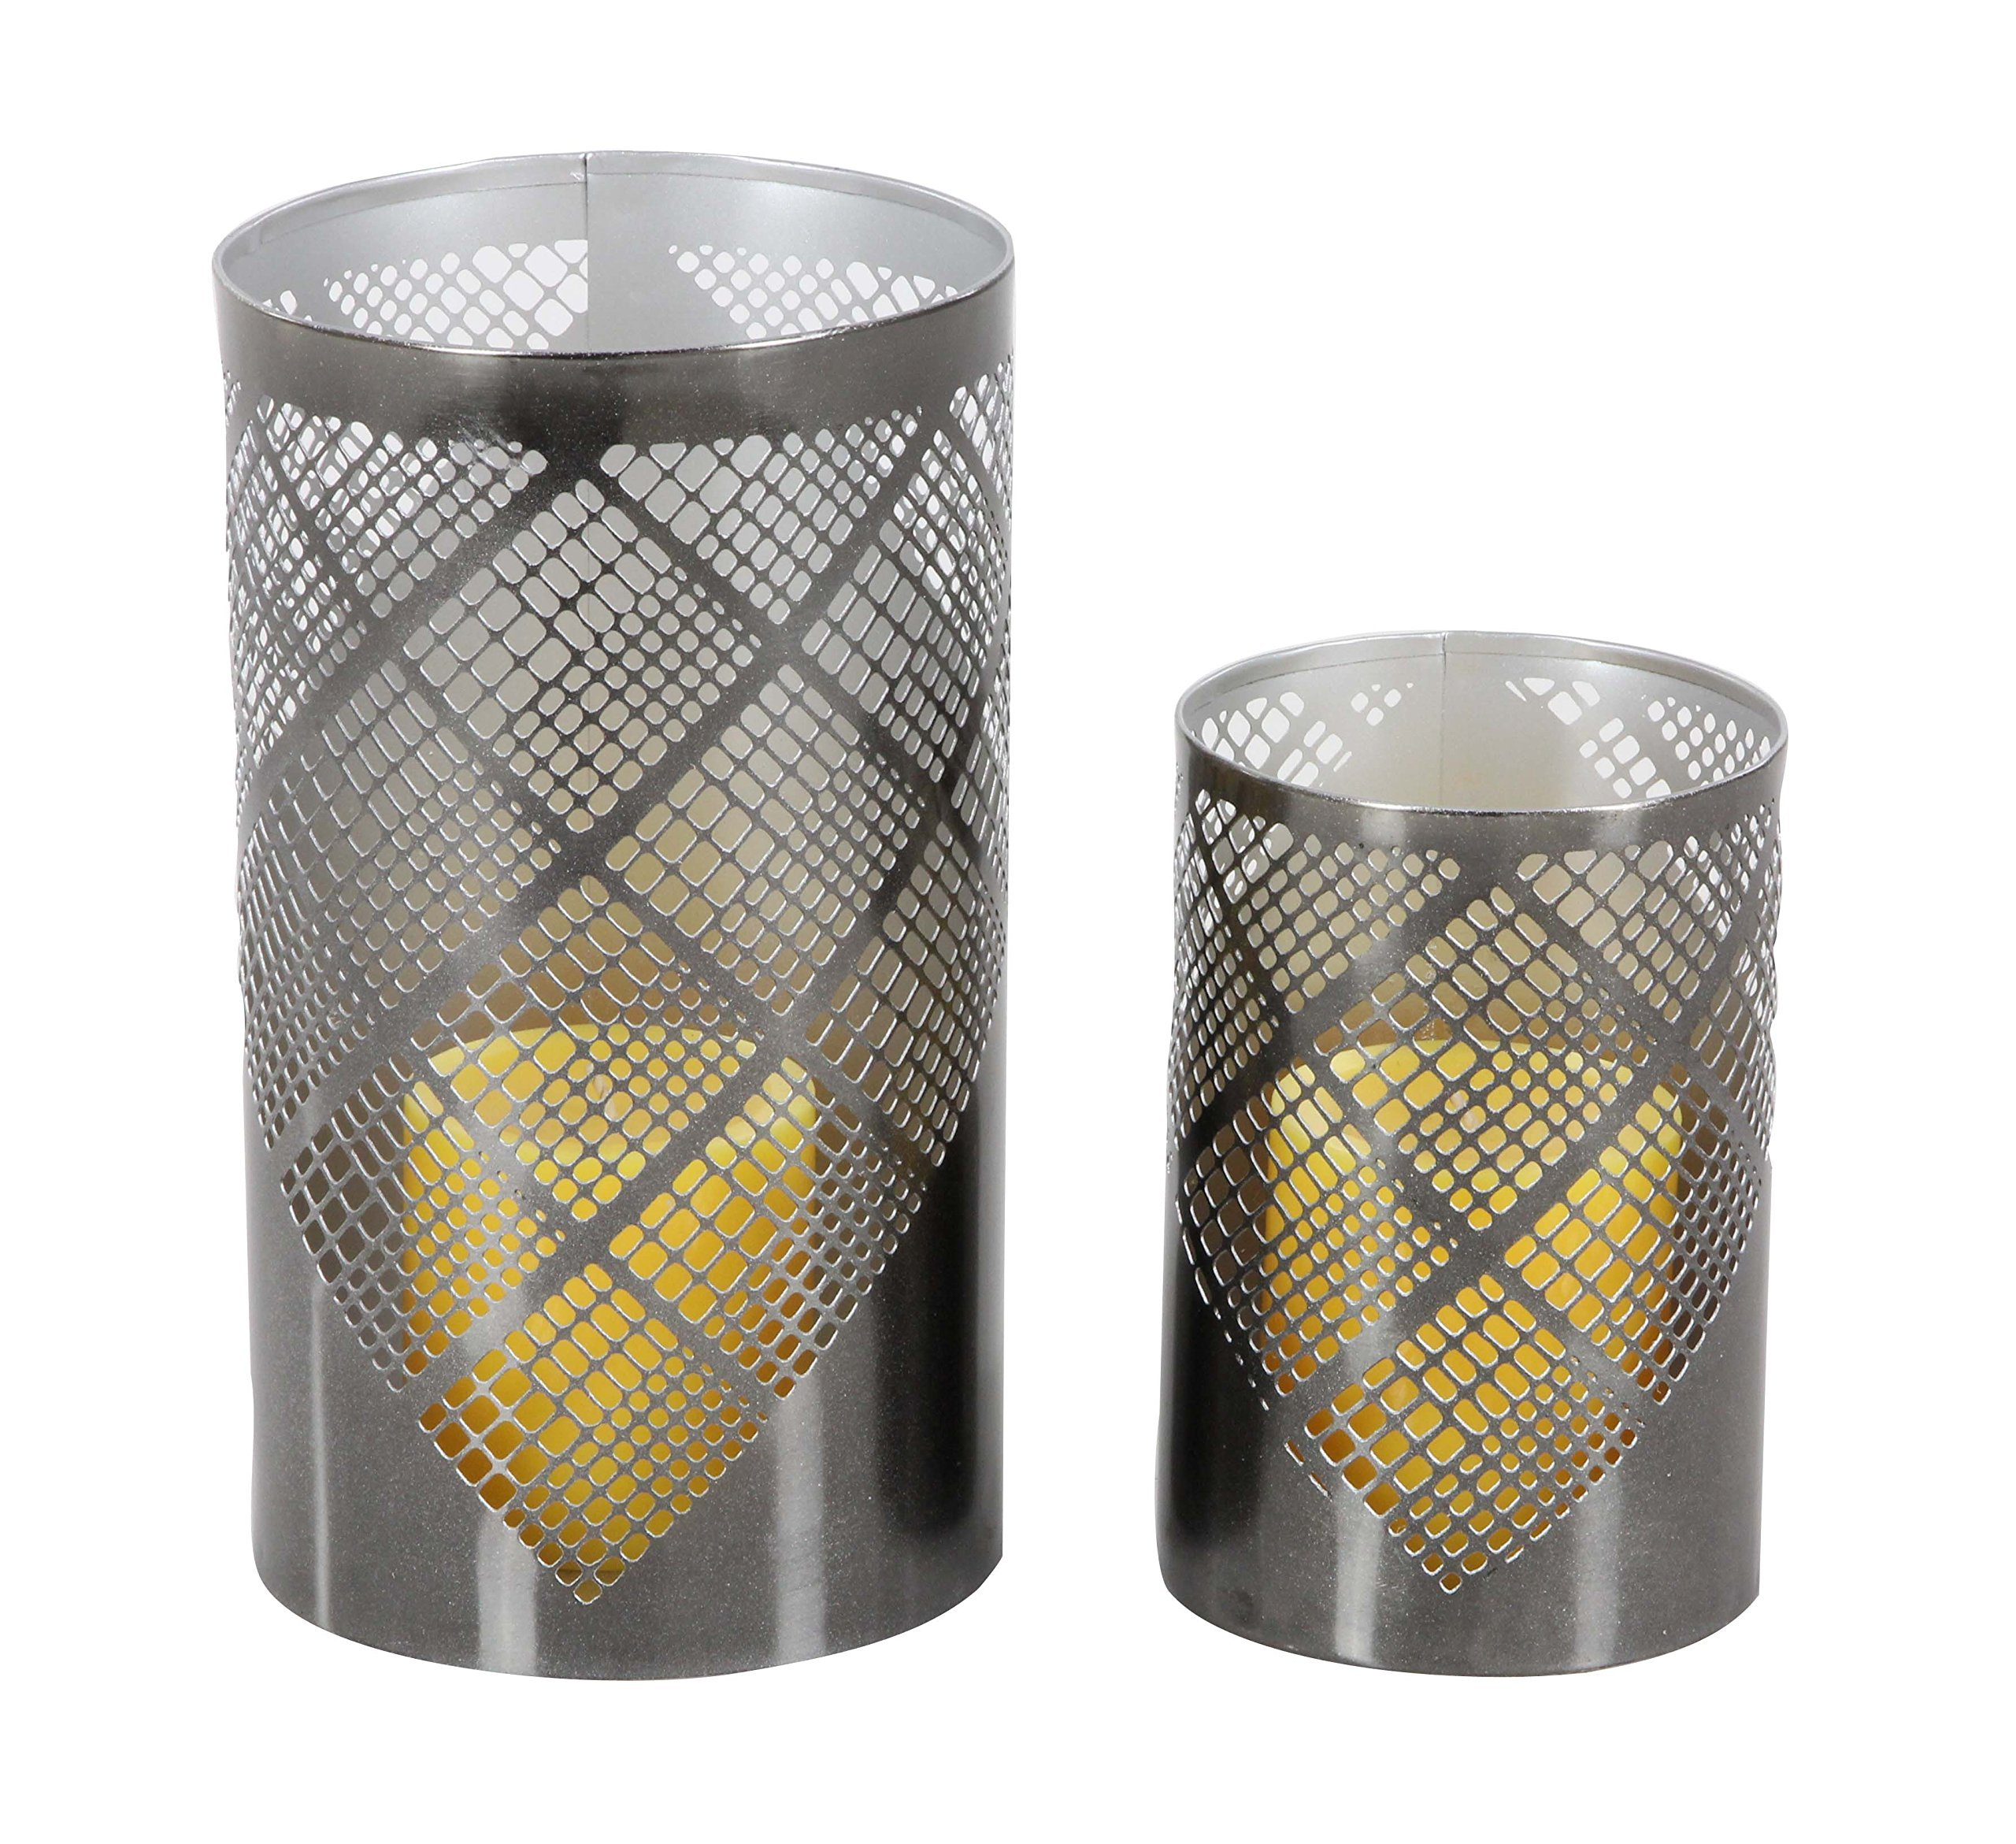 Deco 79 57362 Plaid Pattern Cylindrical Iron Candle Holders, 6'' x 9'', Gray by Deco 79